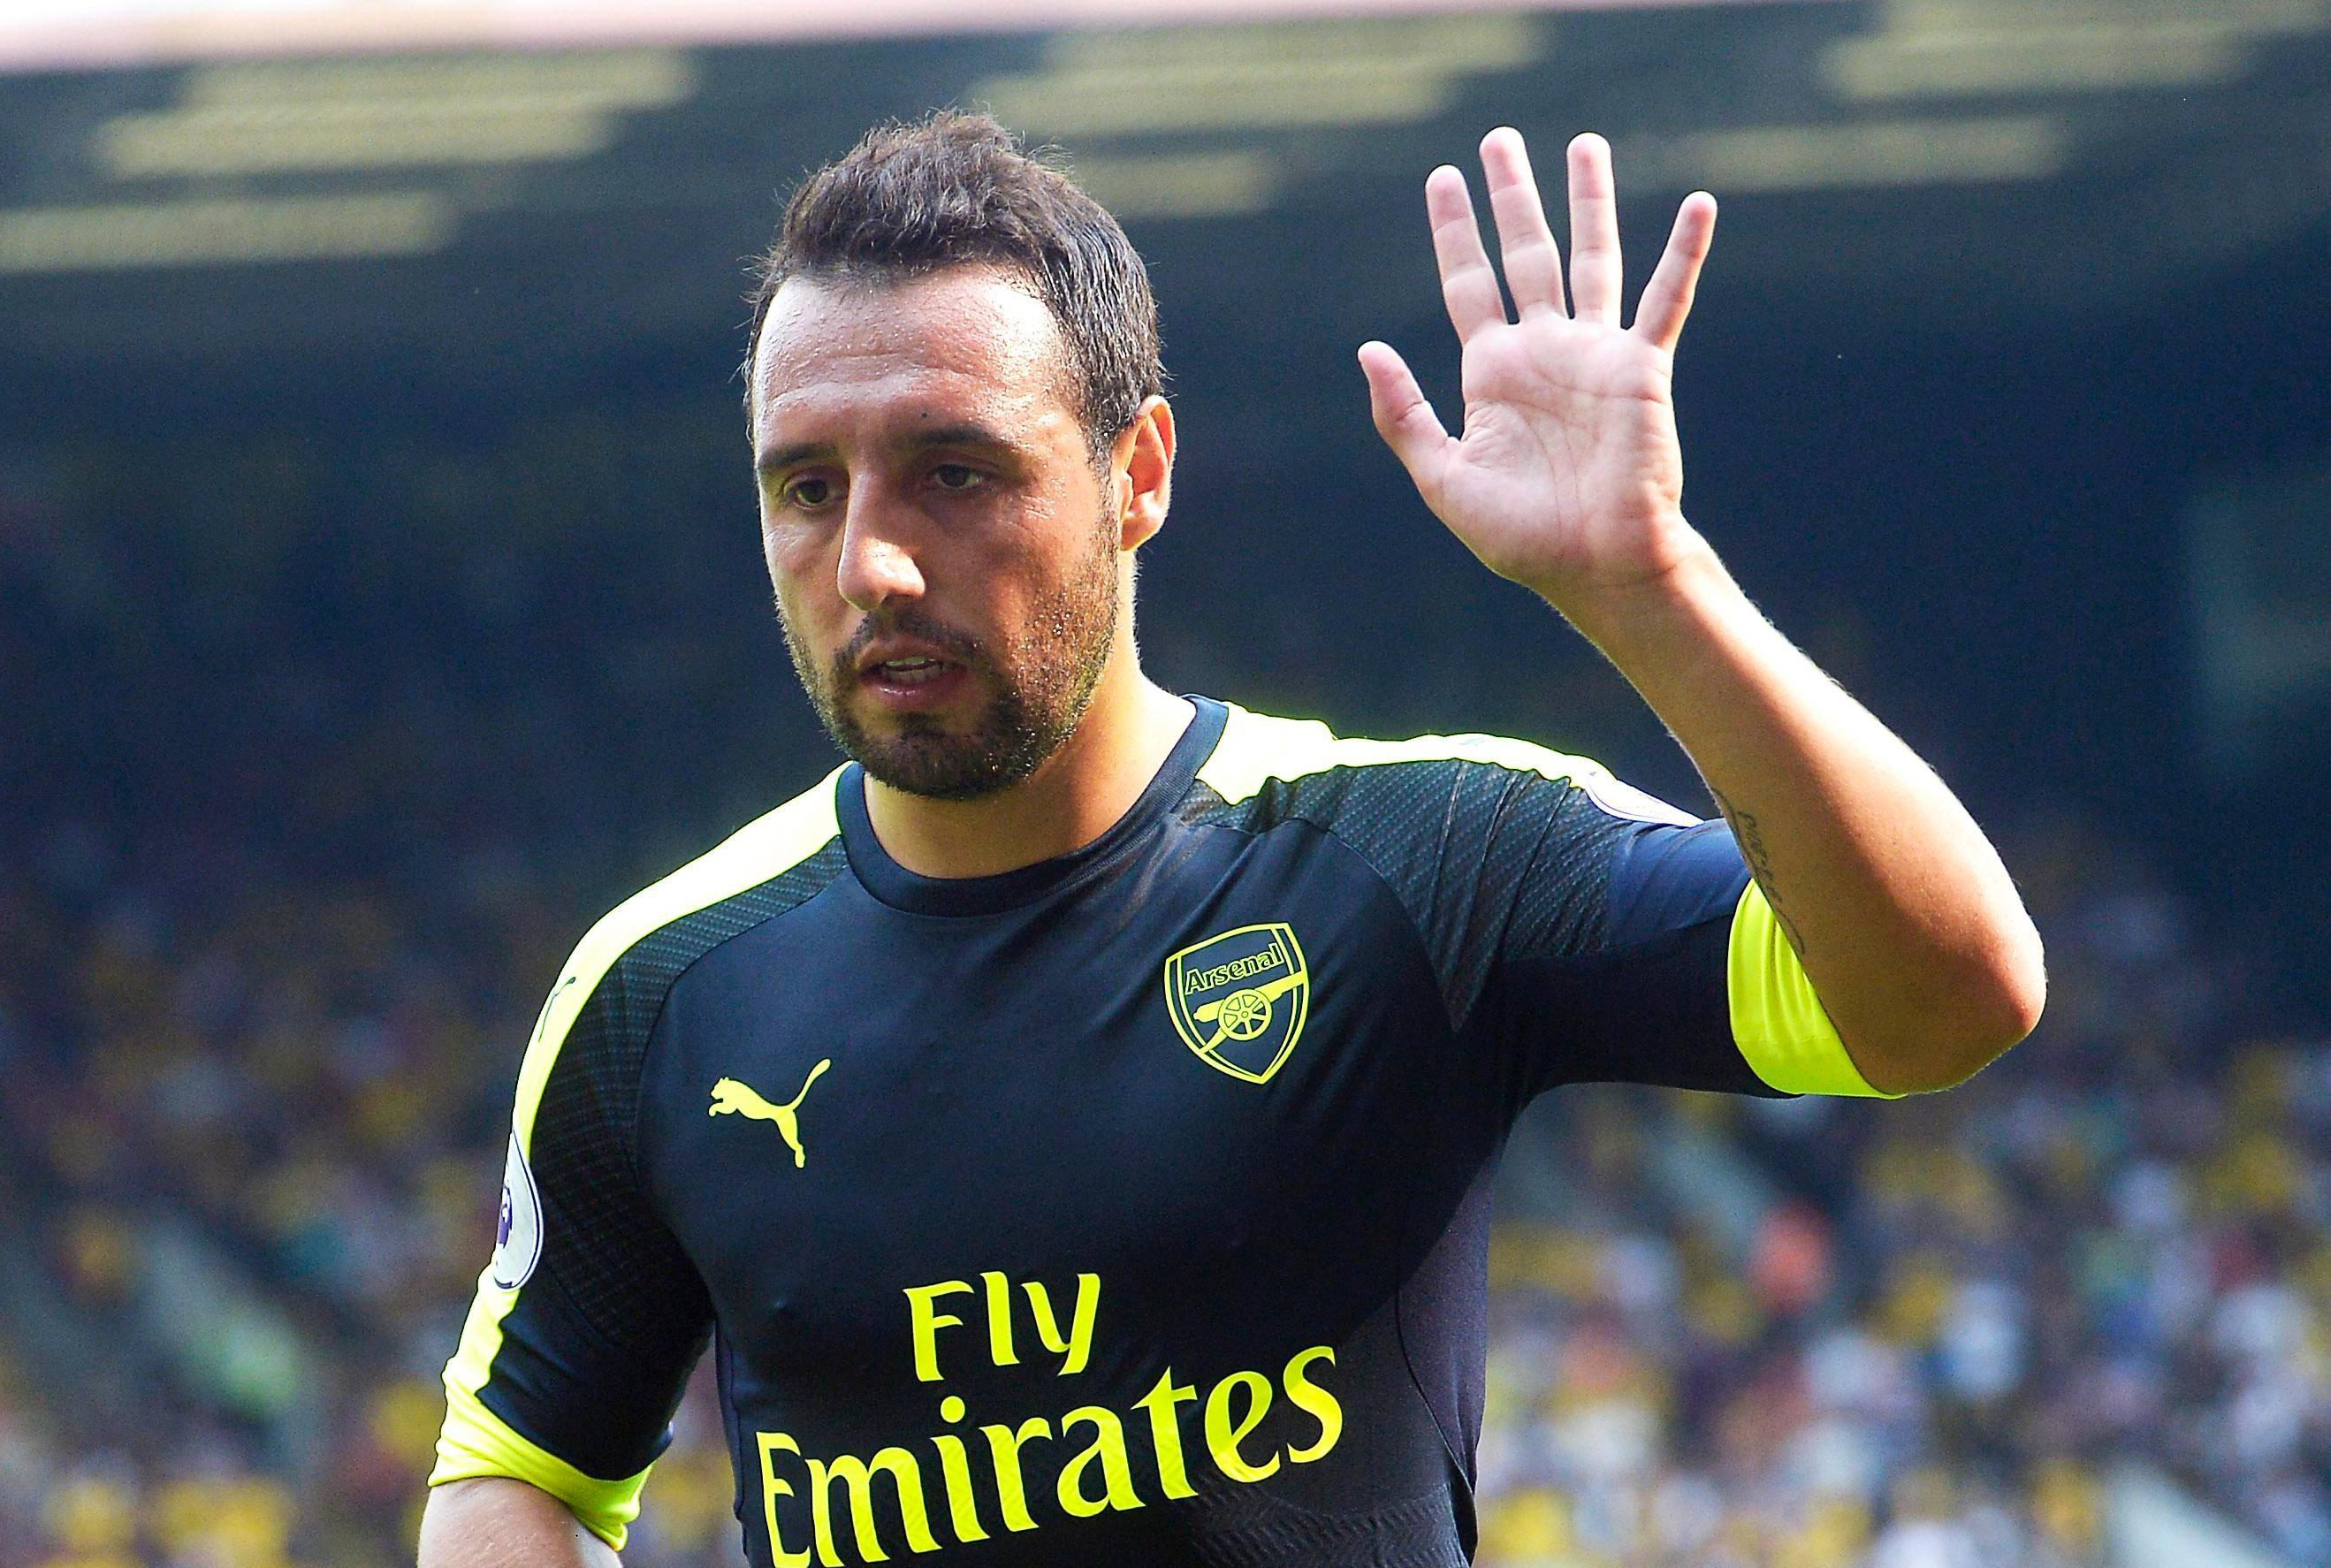 Santi Cazorla targets Arsenal return next season but injury-stricken ace admits he may forget how to play football by then